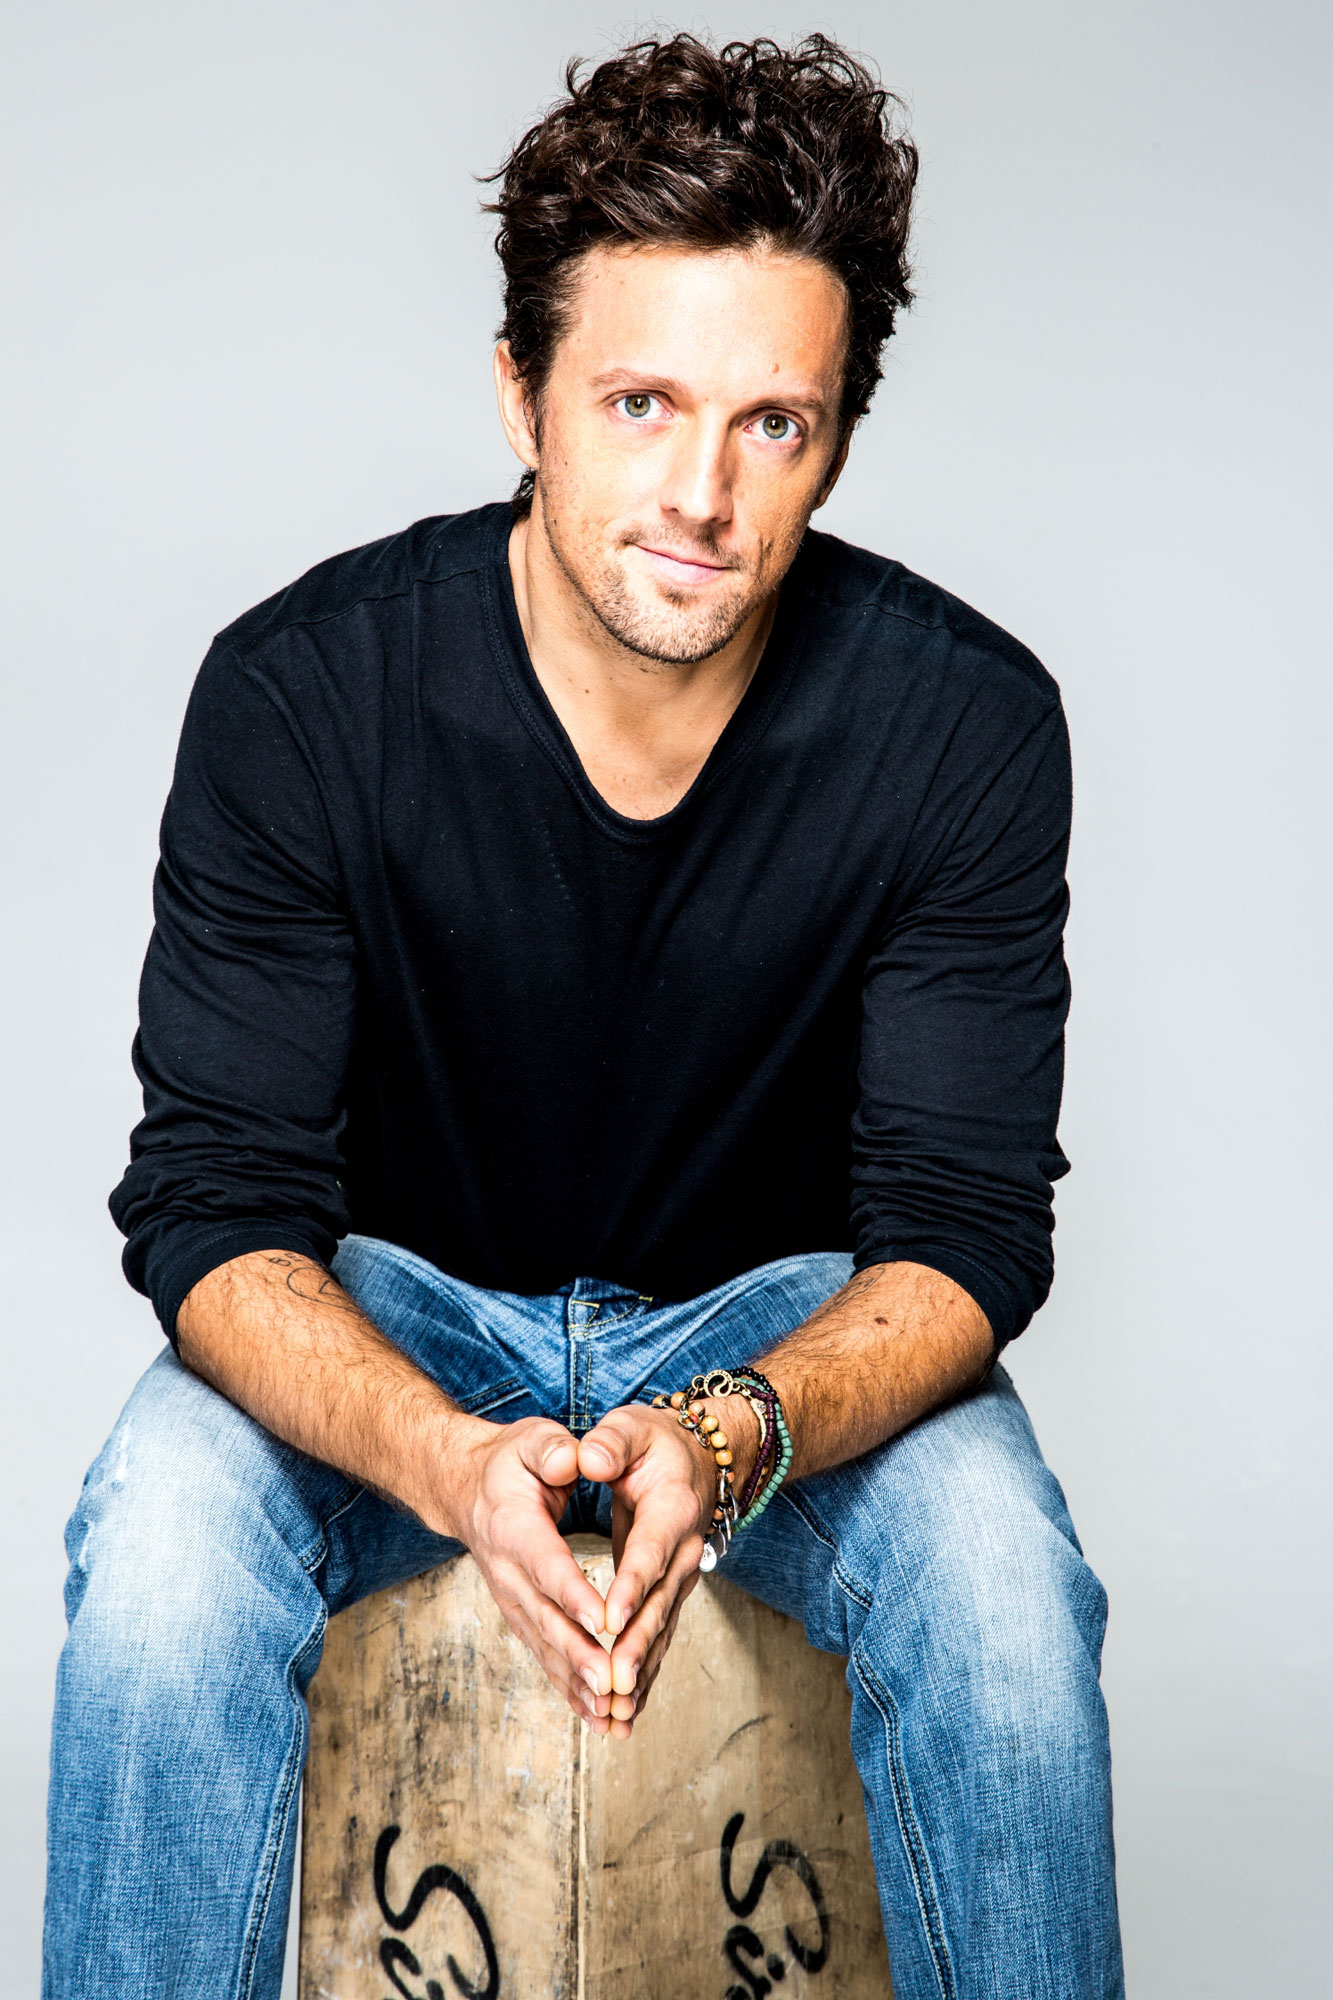 Jason Mraz Credit: Brittany Keene/Atlantic Records